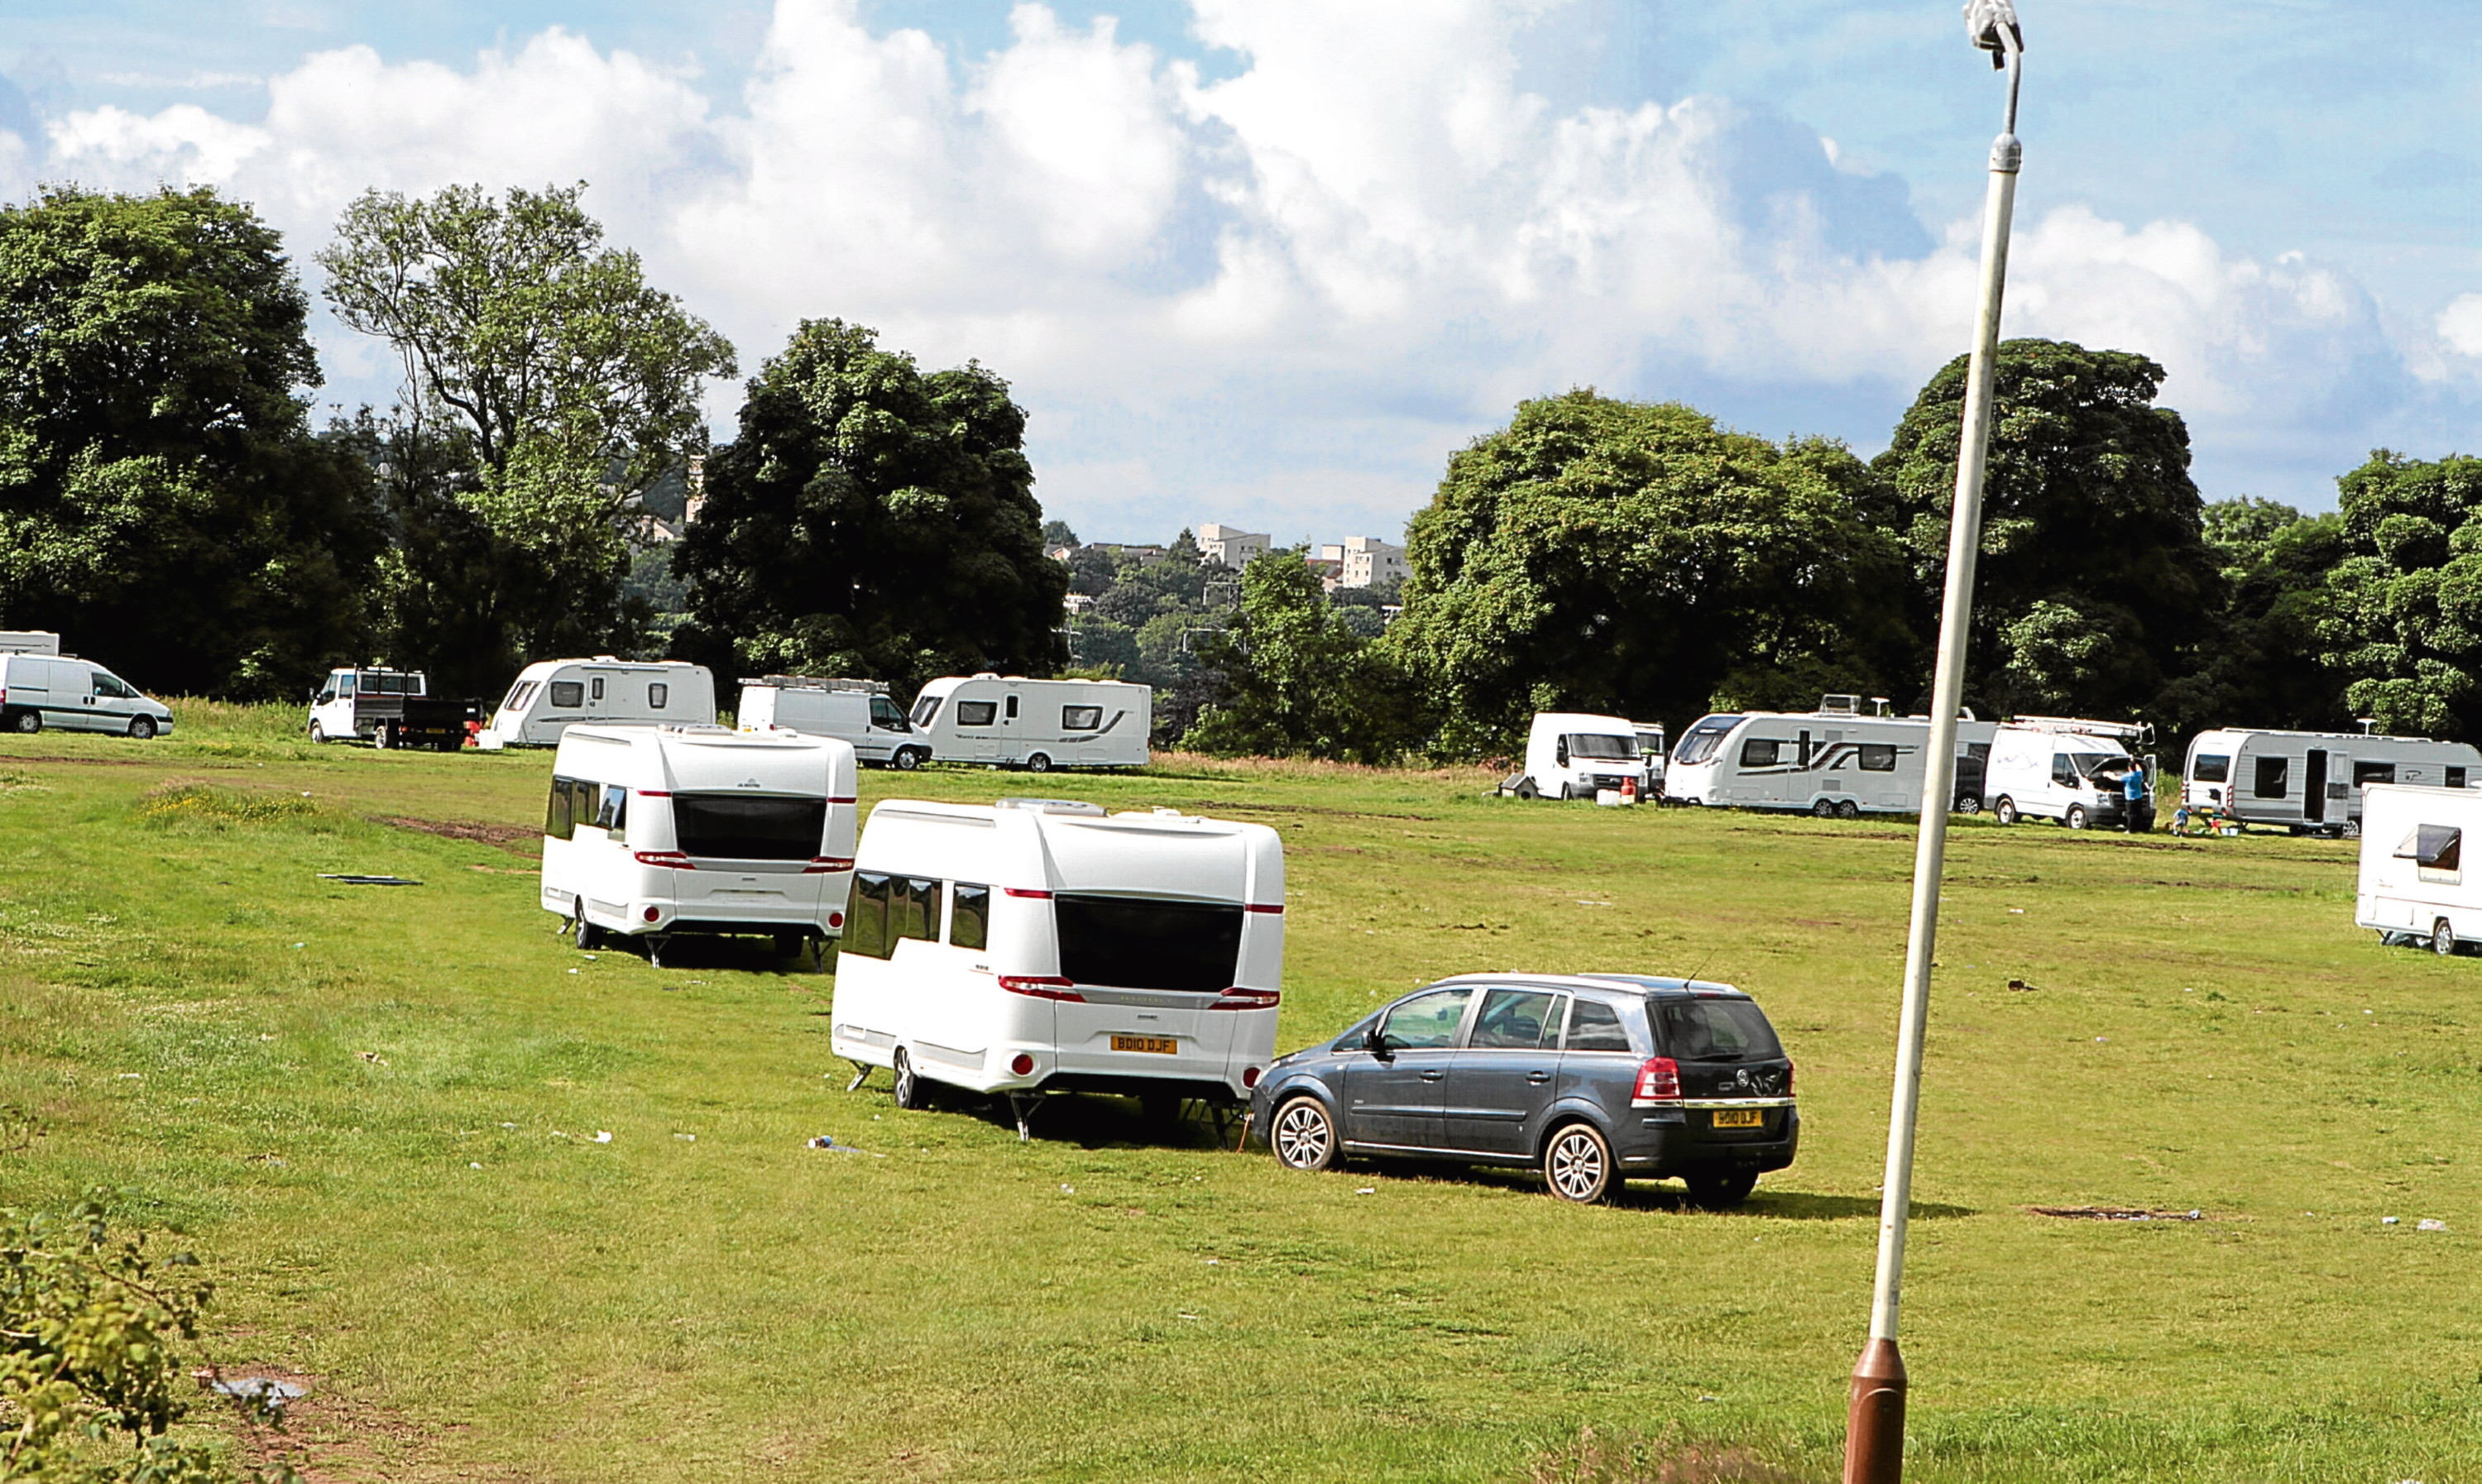 Travellers' vehicles during a stop near Camperdown Park, Dundee.